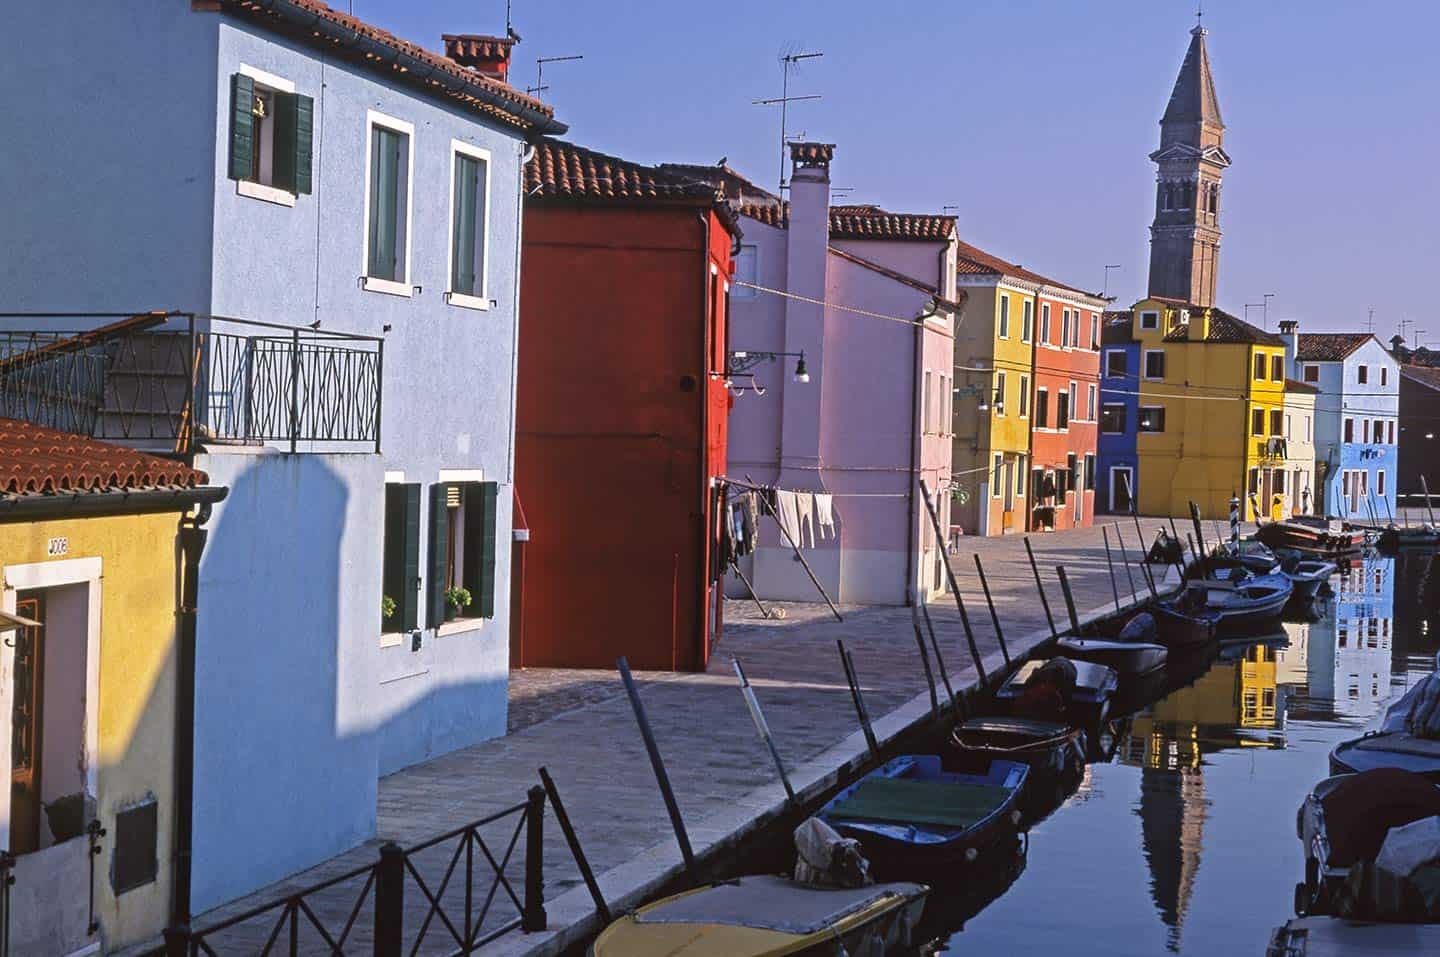 Image of San Martino church and canal in Burano Venice Italy